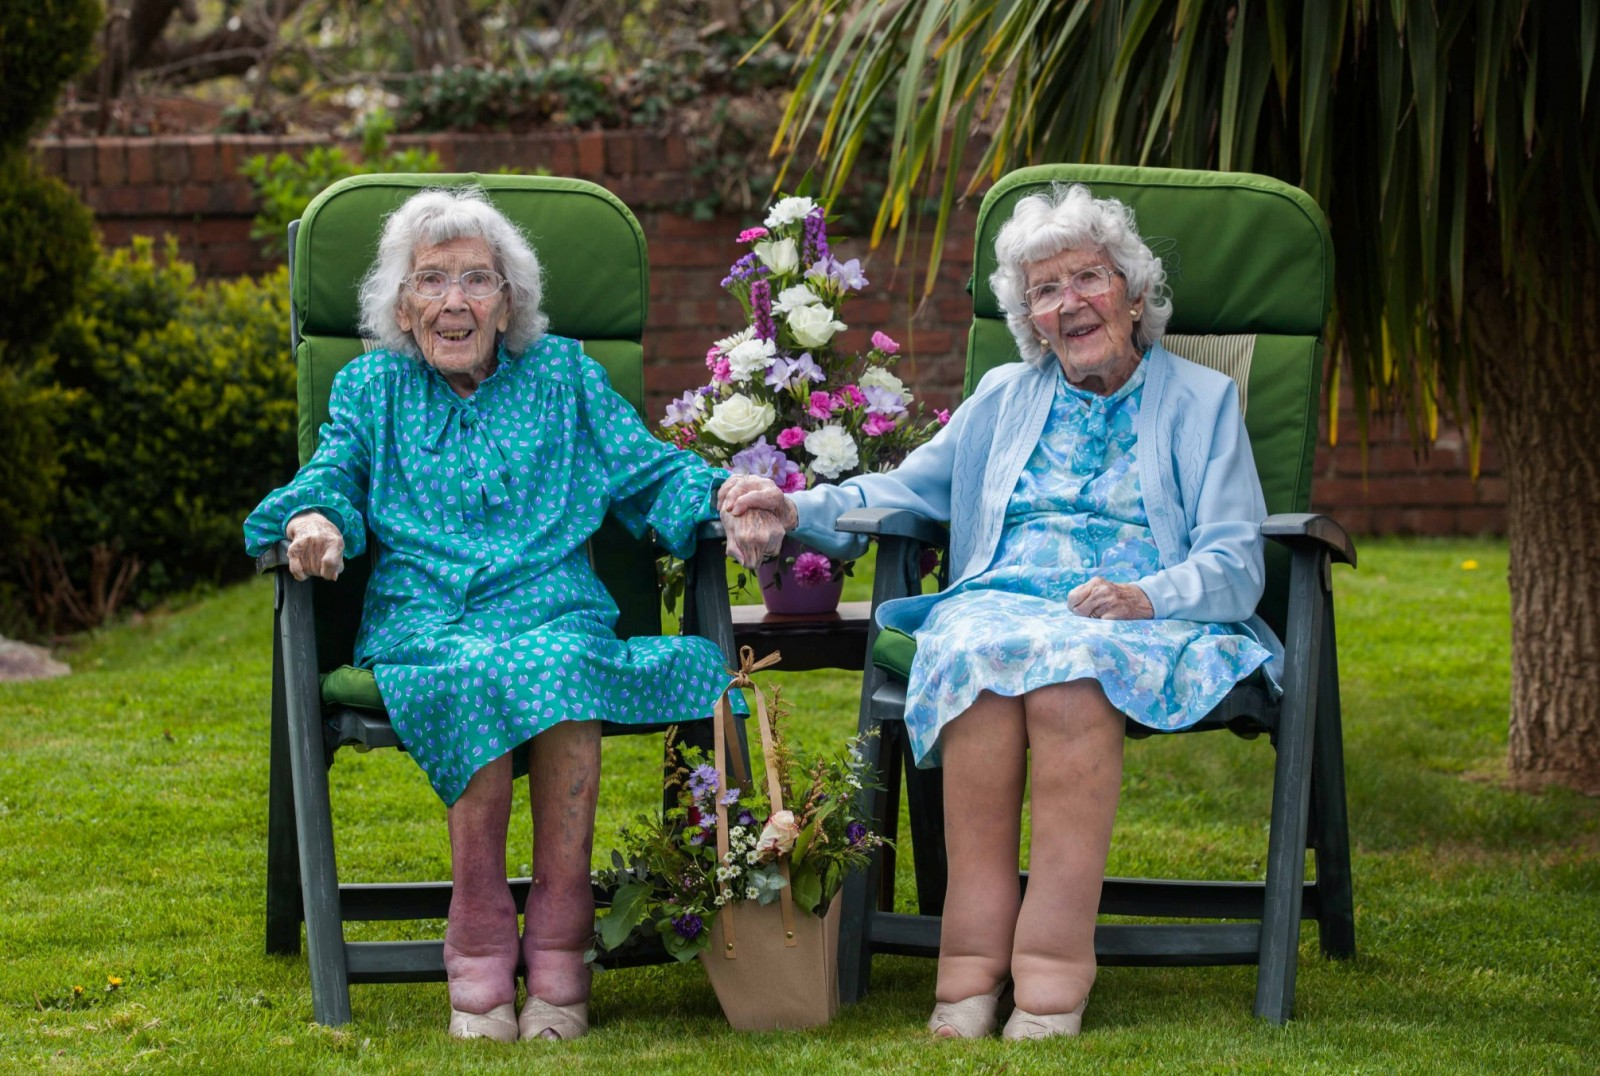 100-year-old twins share their secret to a long life